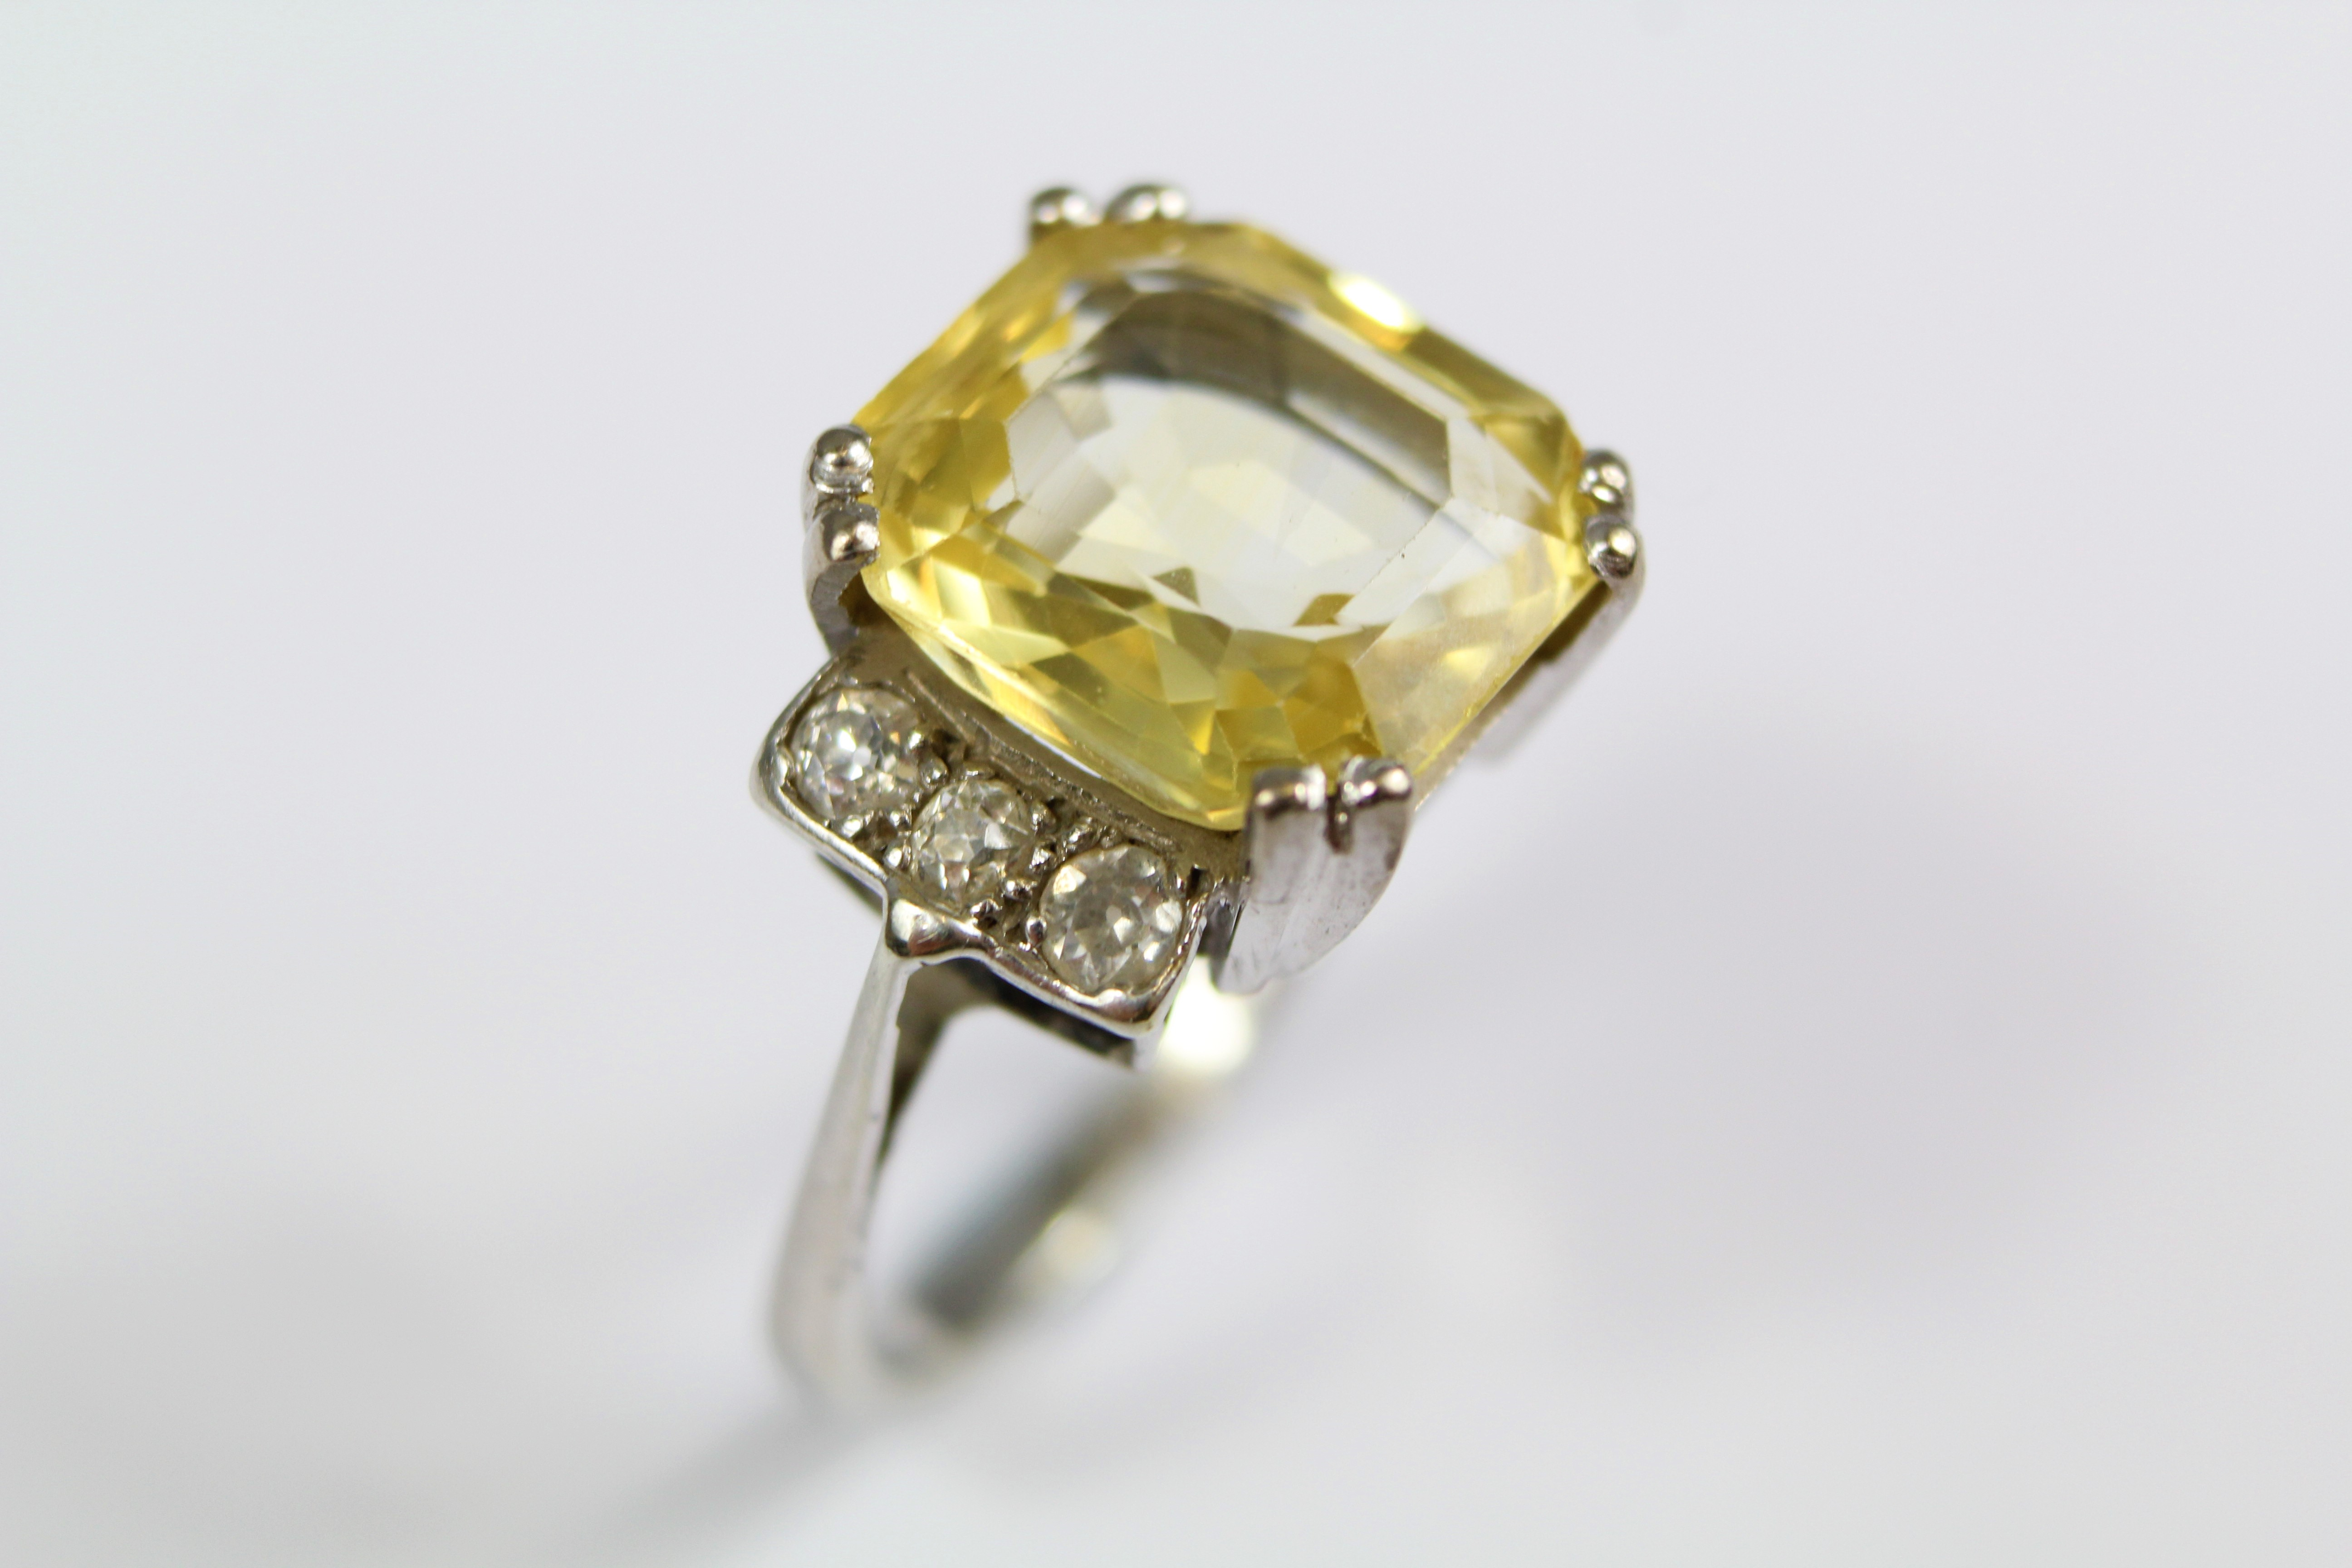 Art Deco Natural Yellow Diamond Ring £2800